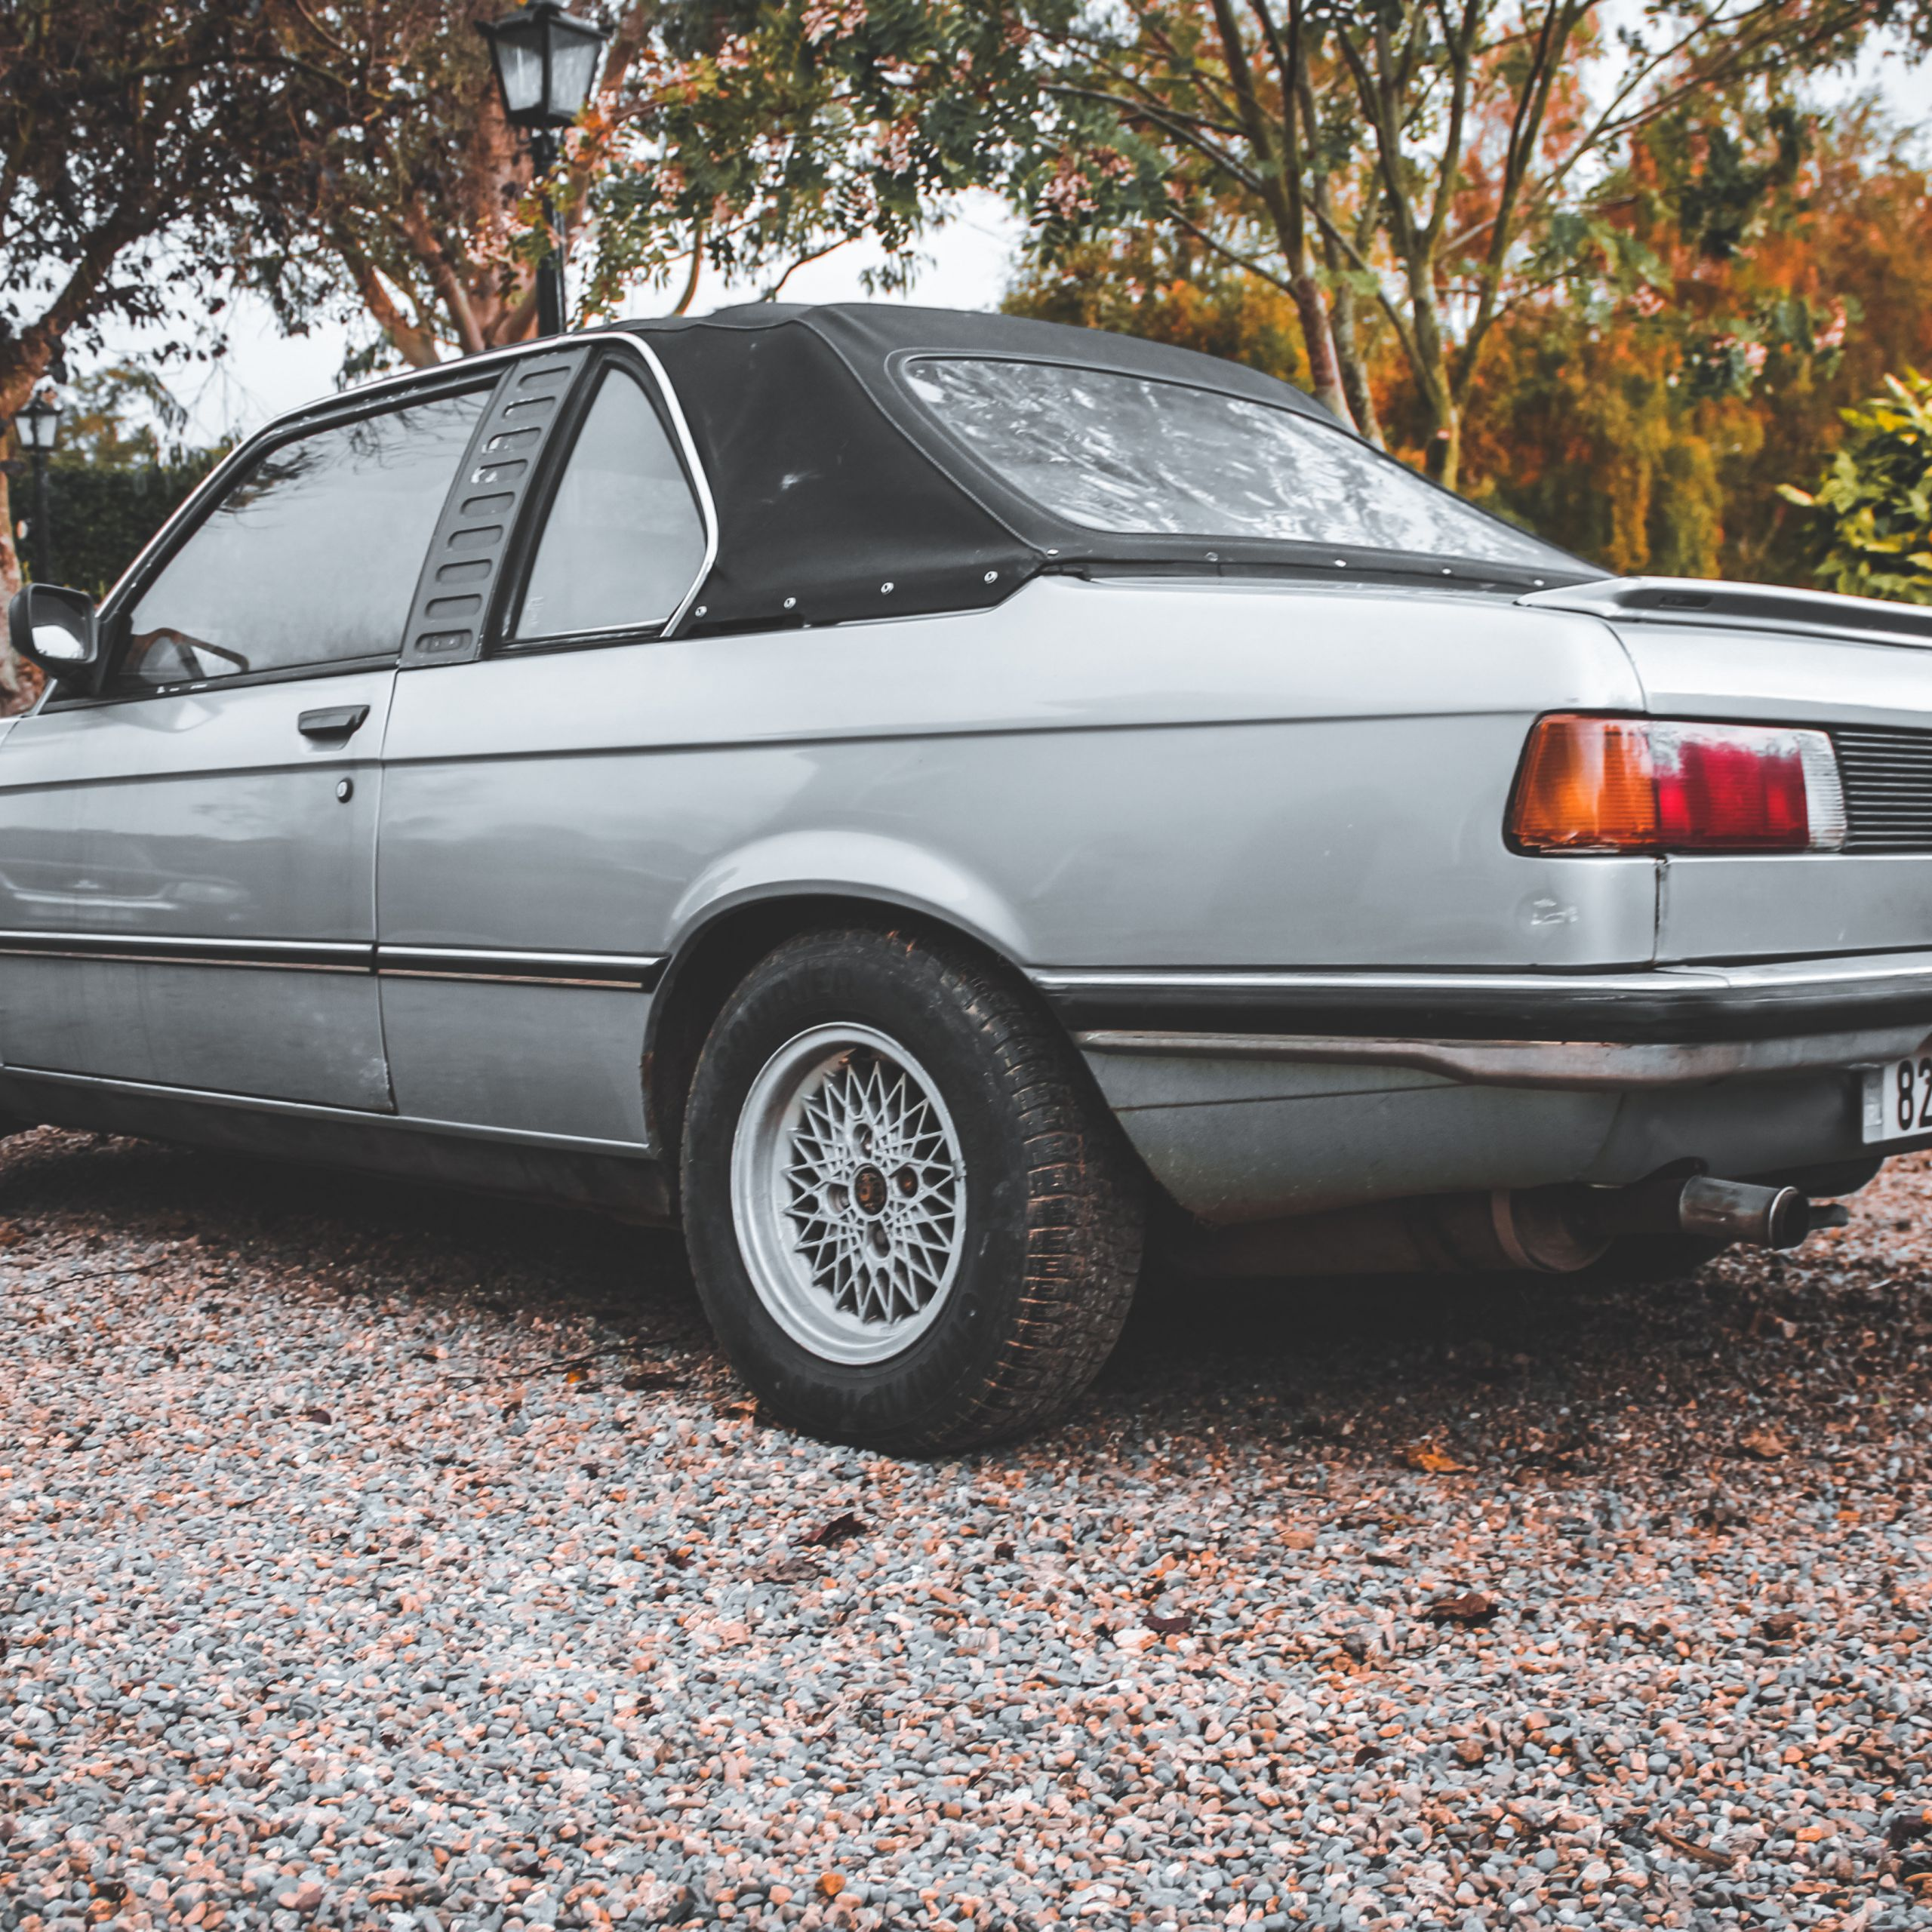 90s Cars for Sale Near Me Inspirational Bmw Classic Cars for Sale